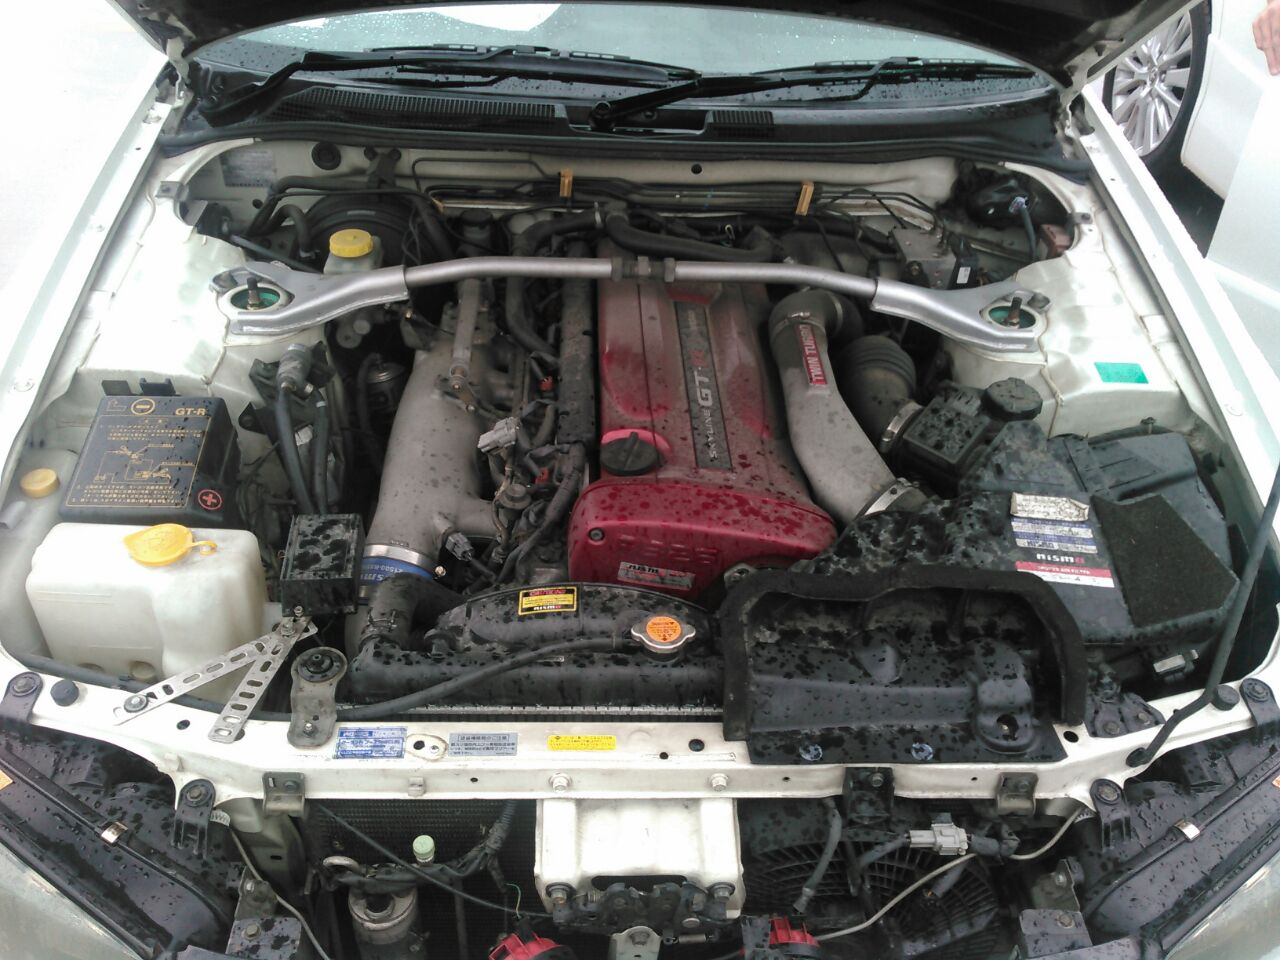 2001 Nissan Skyline R34 GTR VSpec2 engine bay